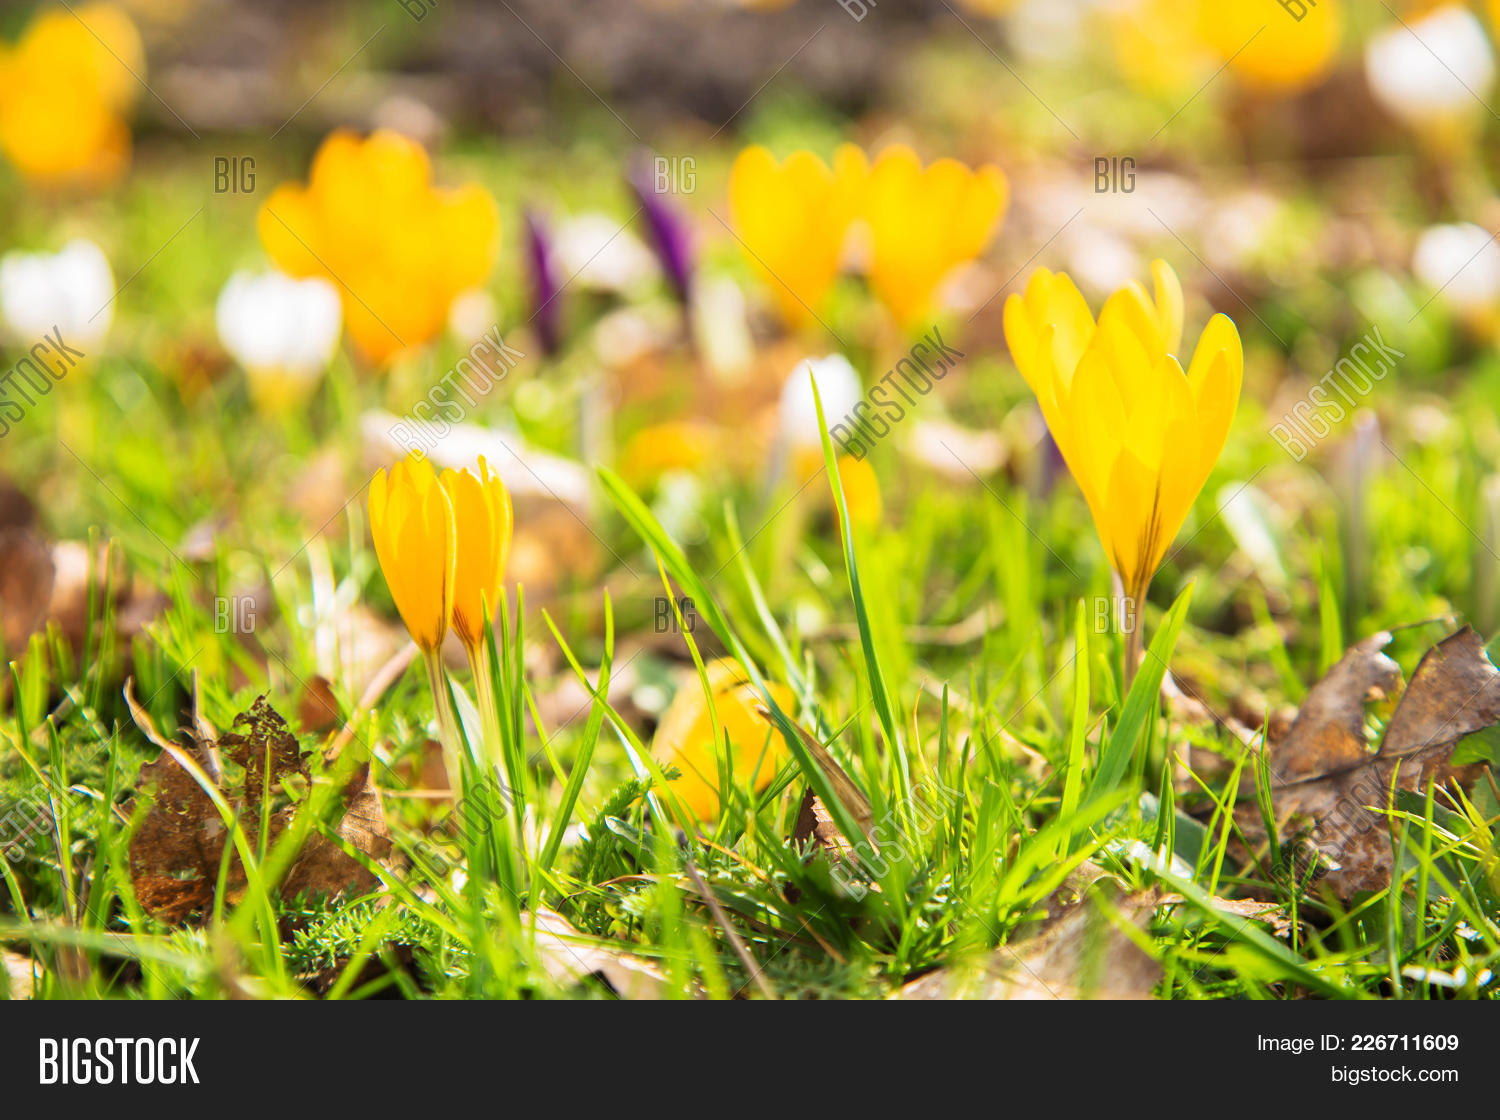 First Spring Flowers Image Photo Free Trial Bigstock